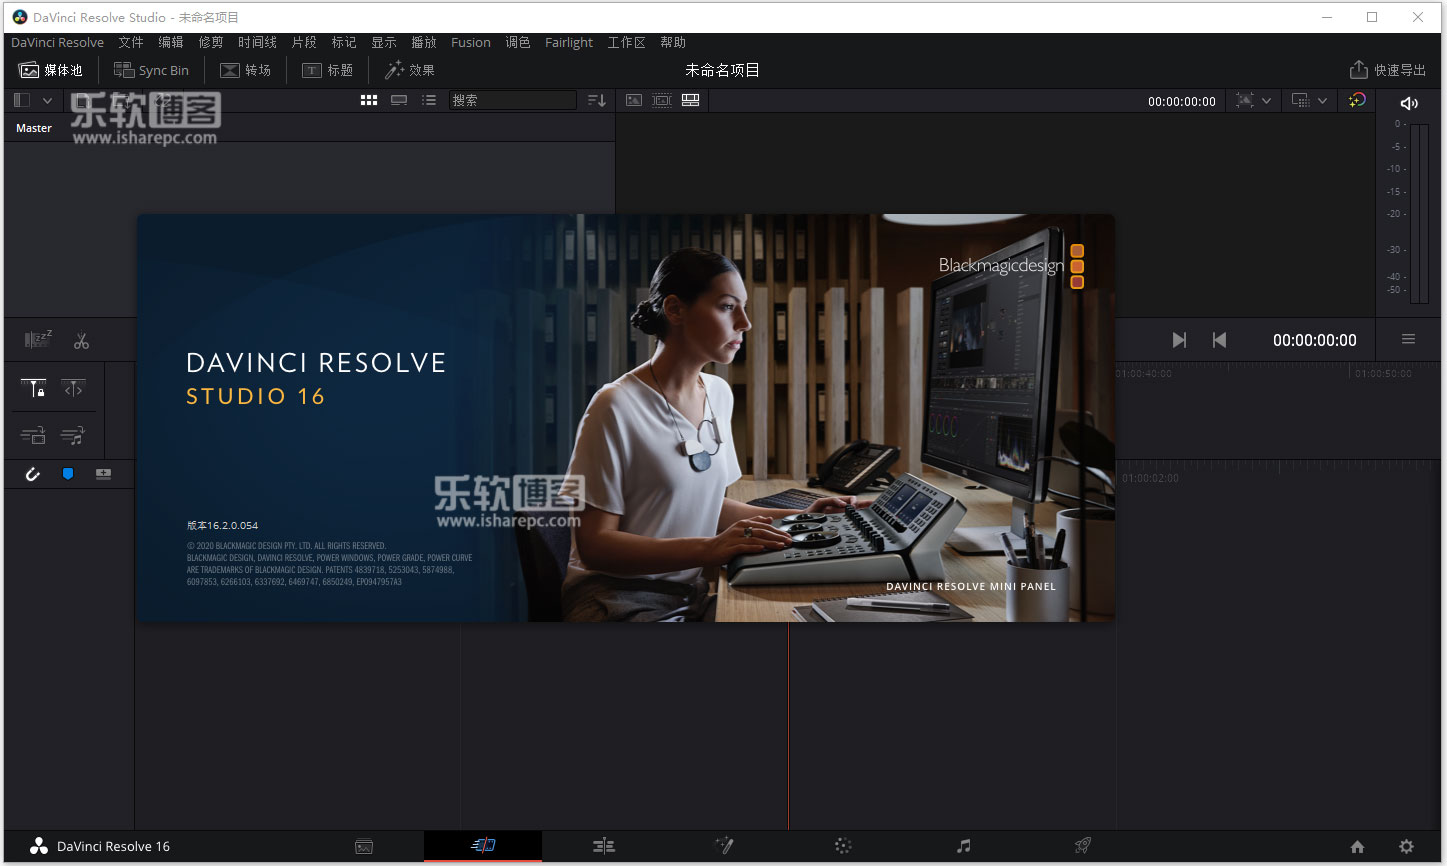 DaVinci Resolve Studio 16.2破解版